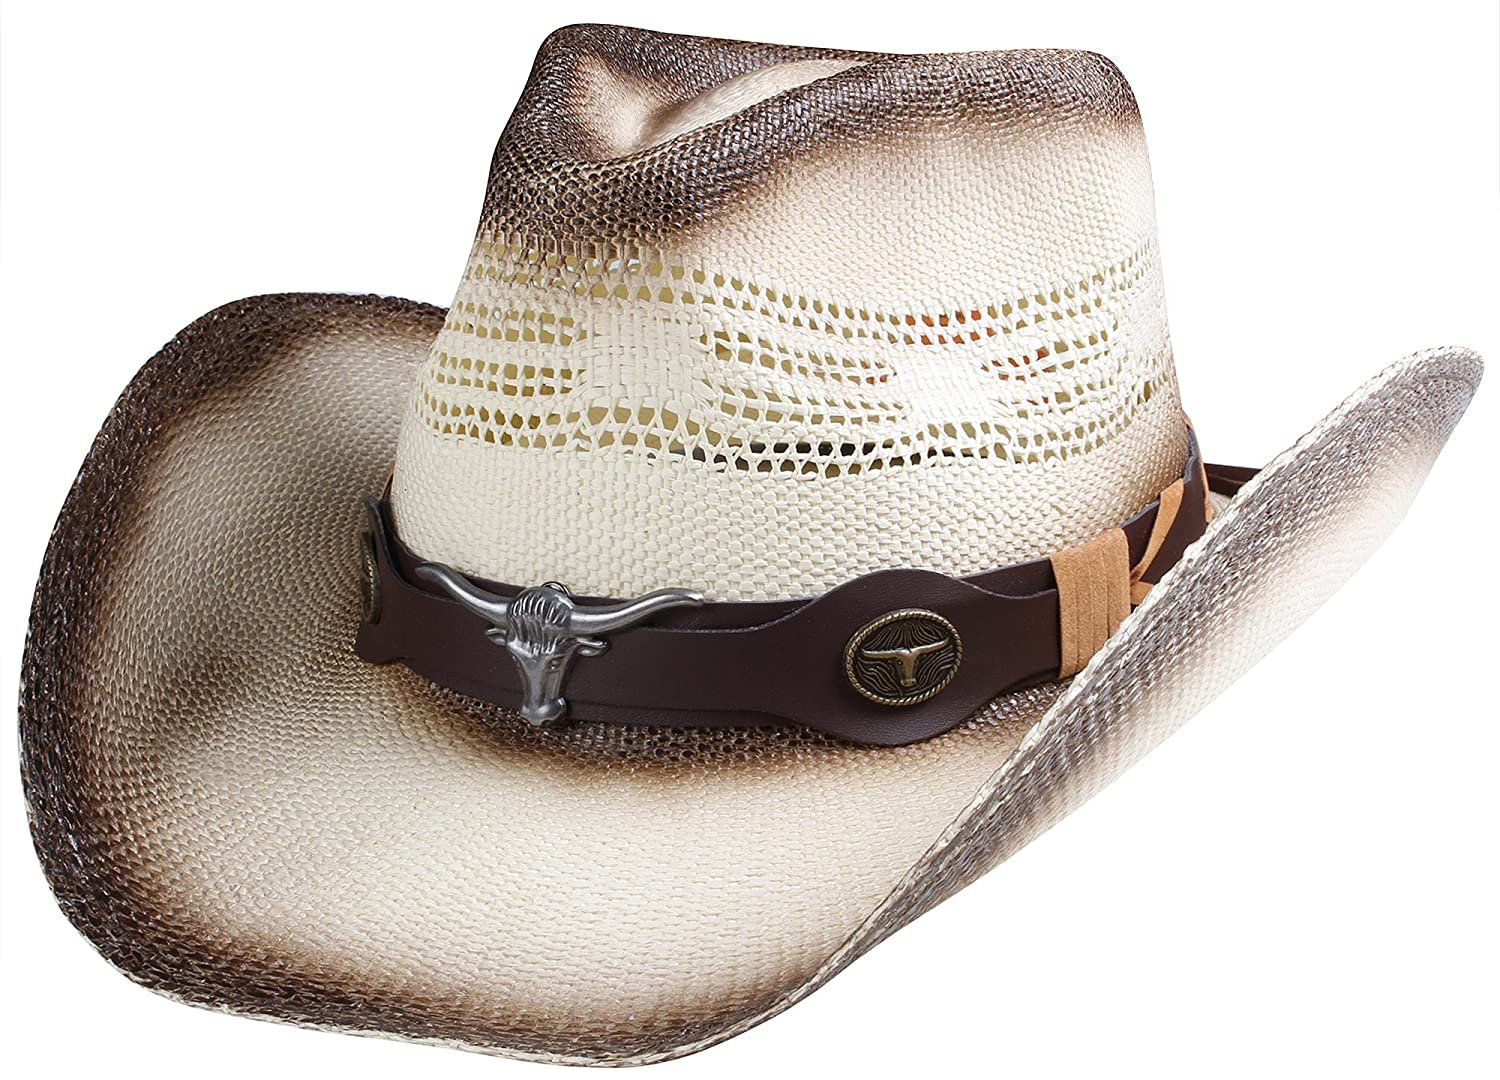 Queue Essentials Classic Straw Cowboy Cowgirl Hat Western Outback with Wide Brim